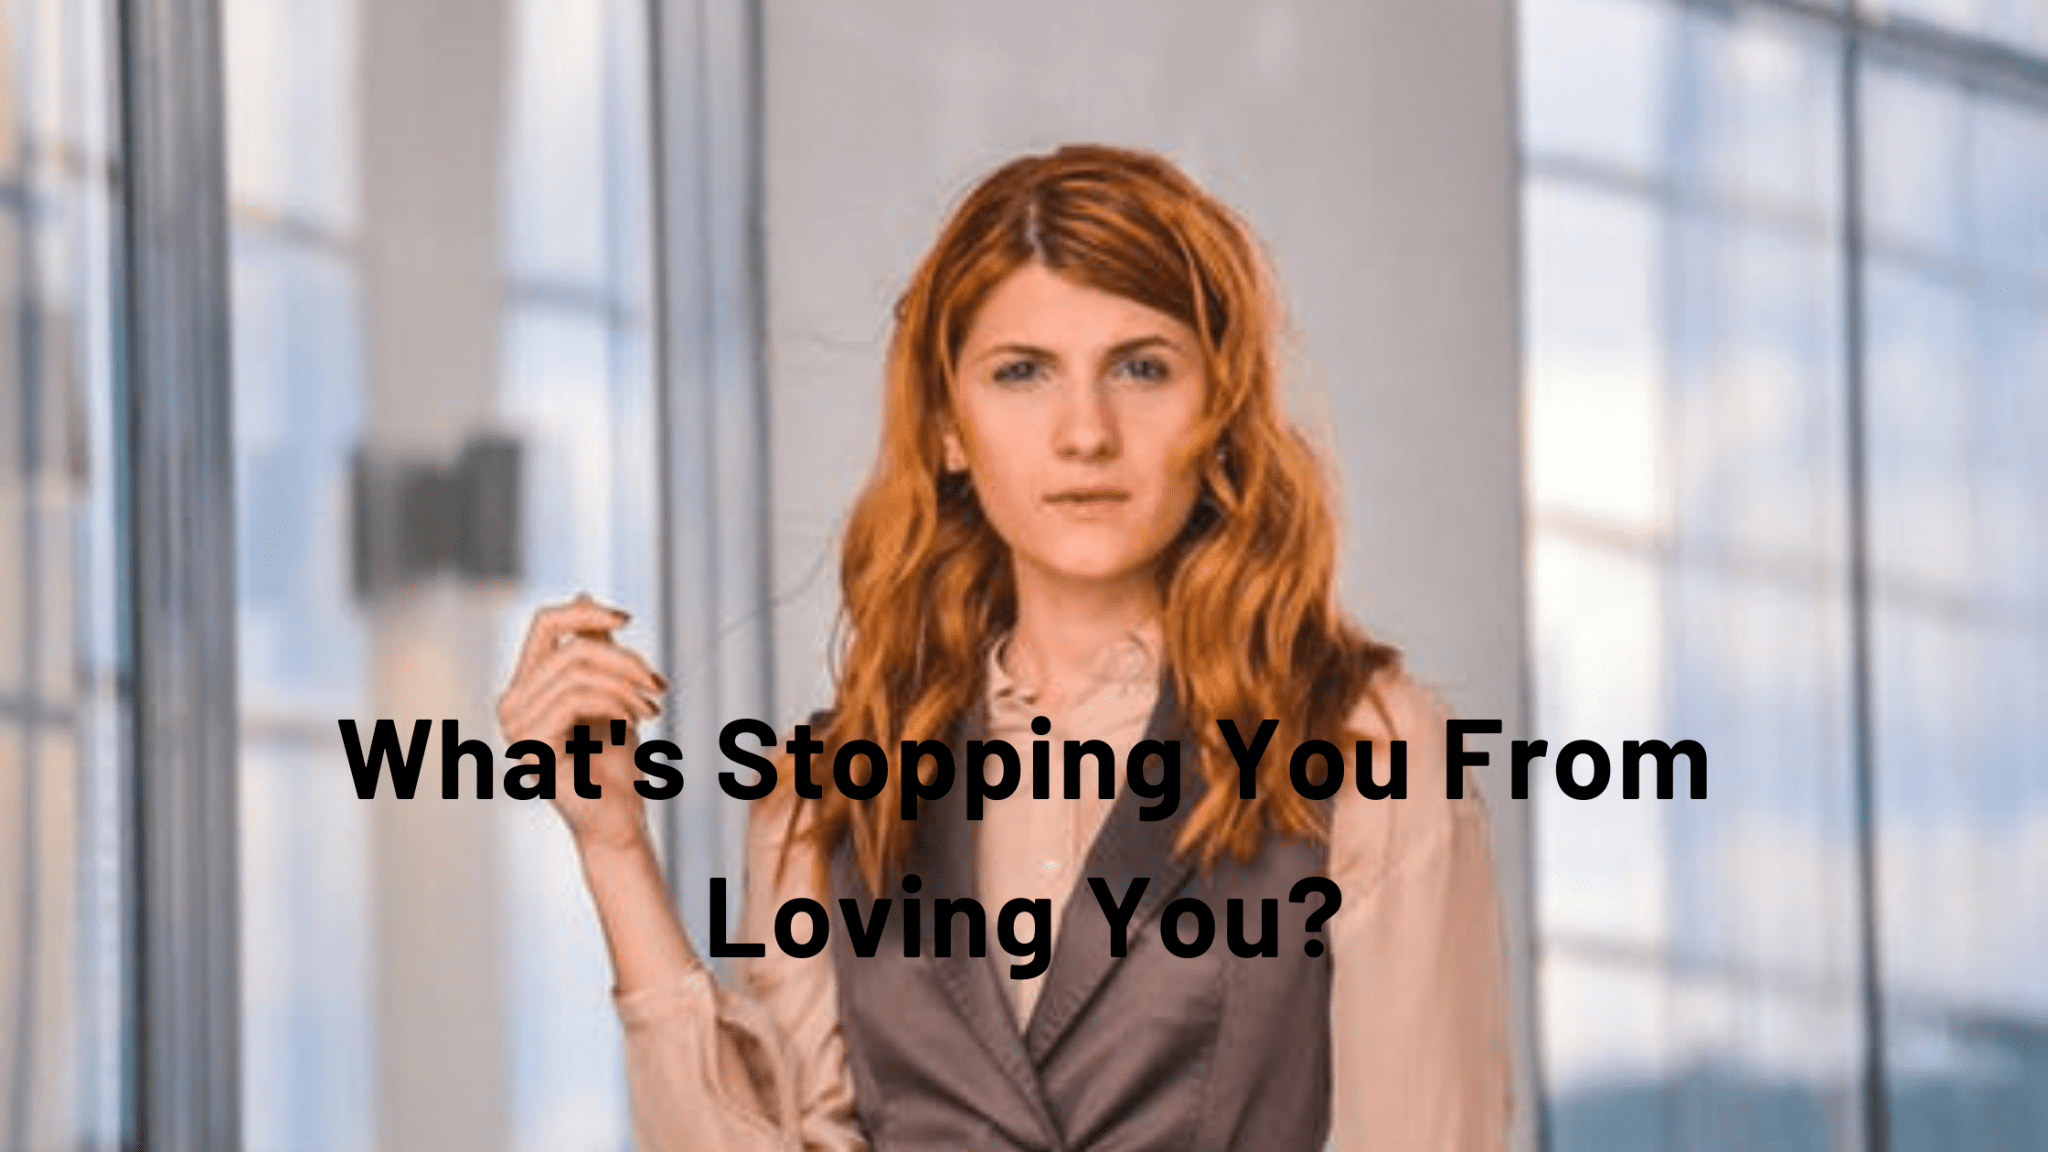 What's Stopping You From Loving You?